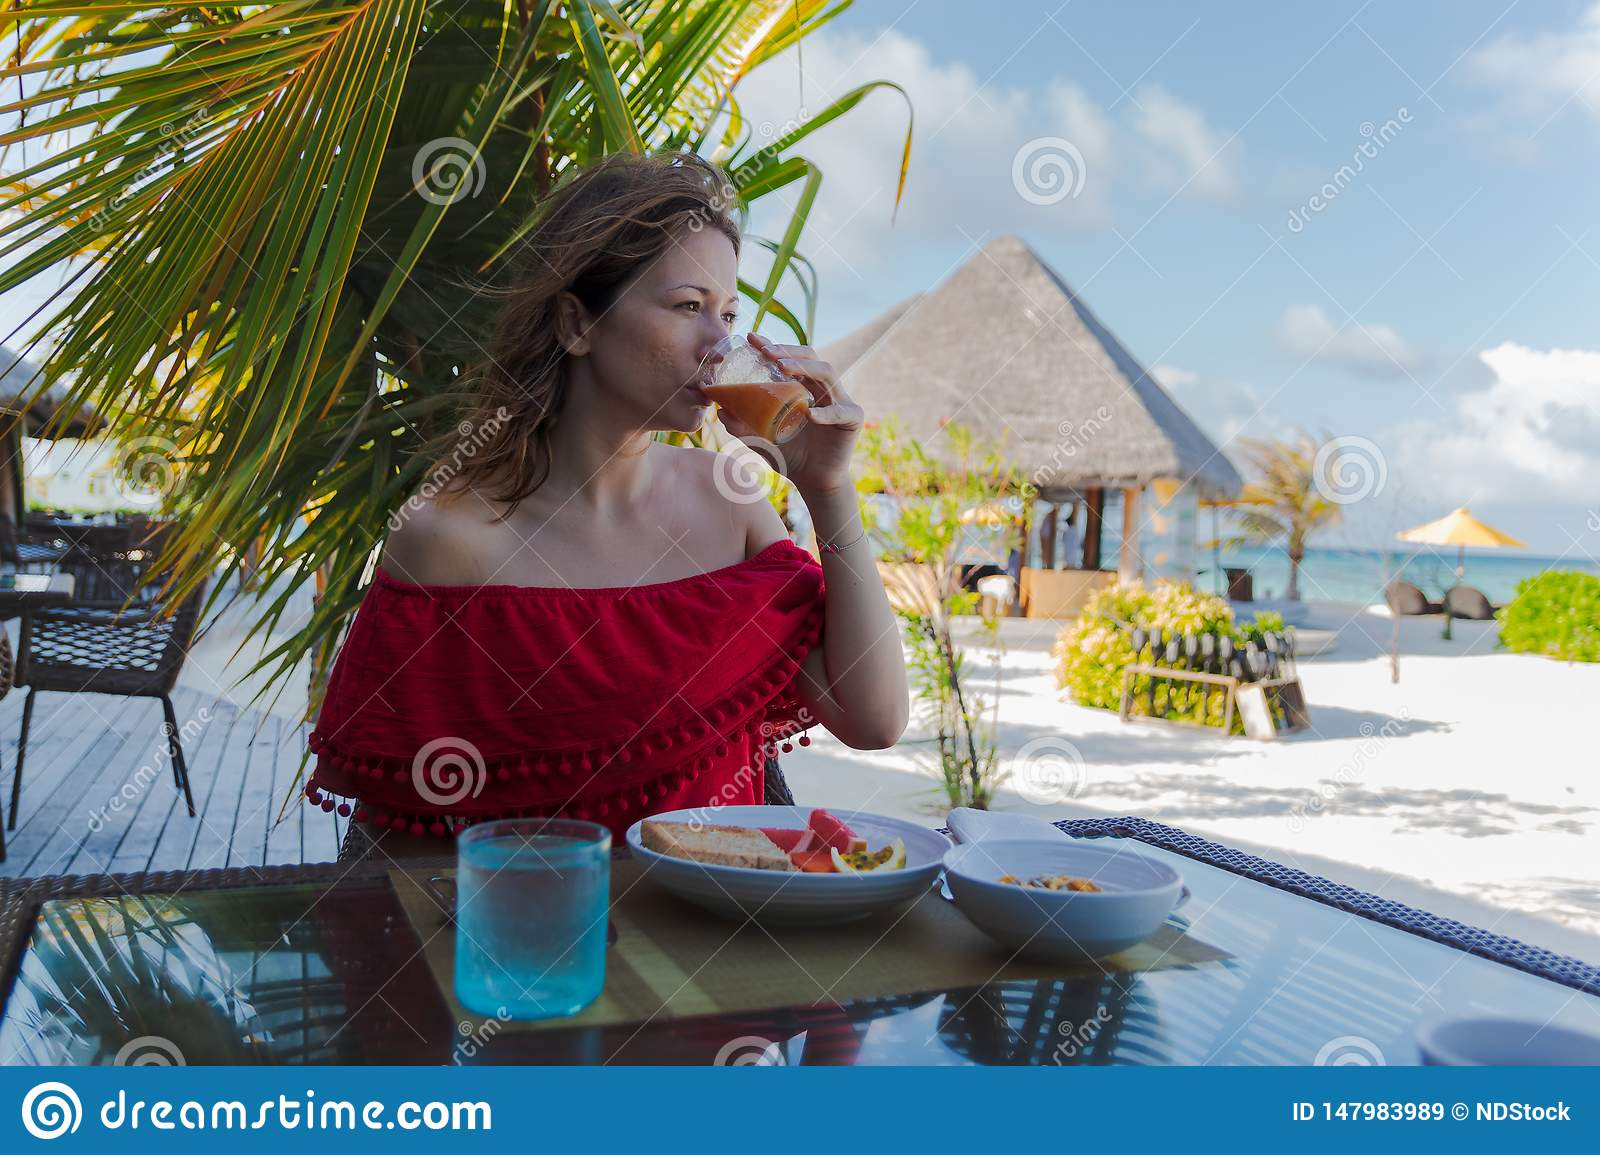 Young woman on holiday in a tropical island eating a healthy breakfast